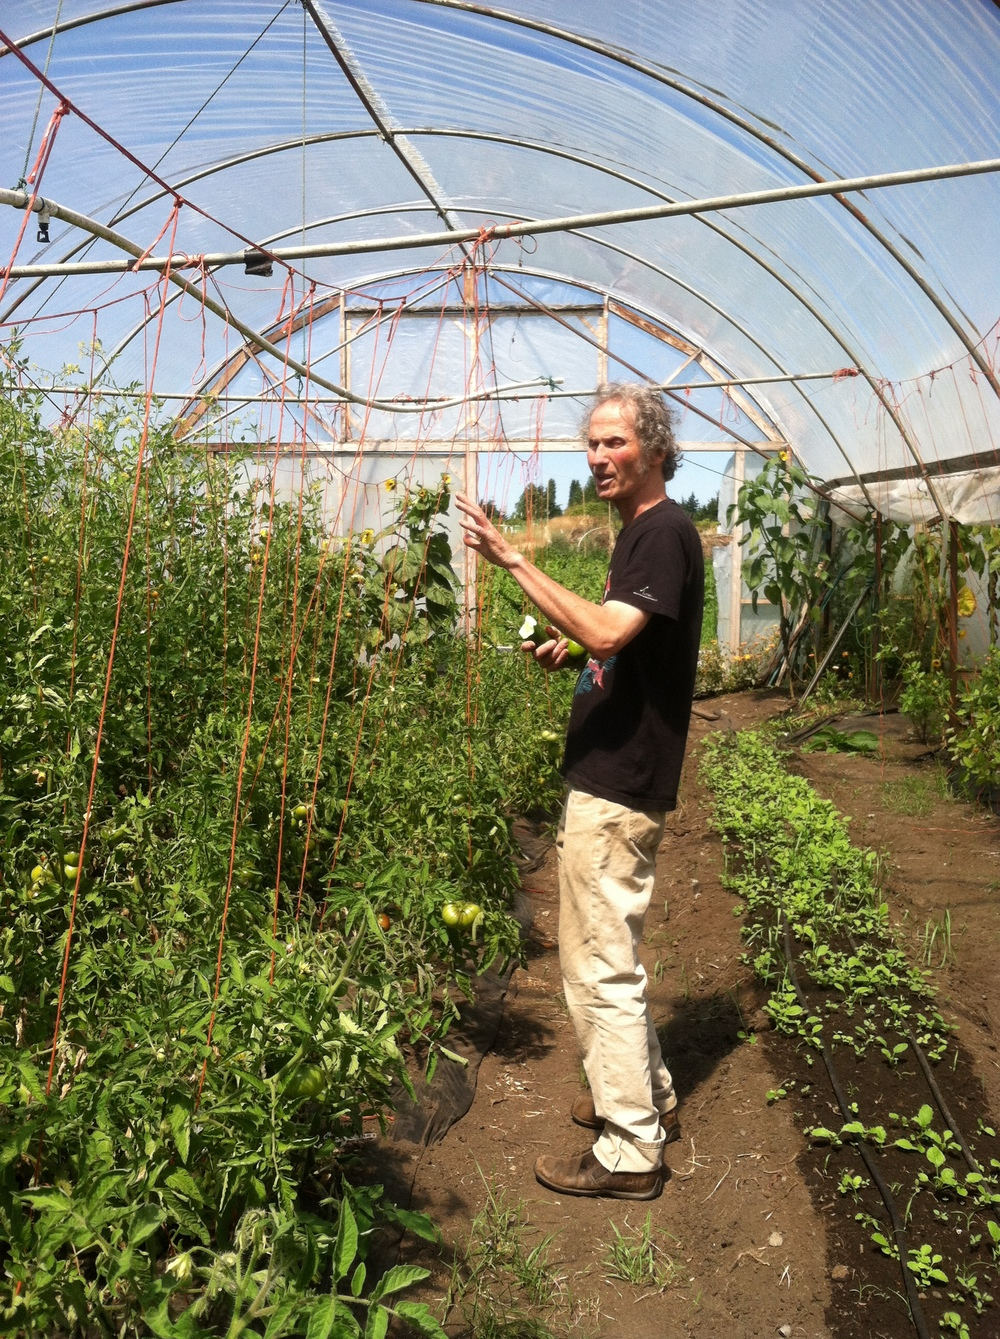 Joe Breskin describing the fate of these tomato plants. He designed an incredible greenhouse at Colinwood Farm!